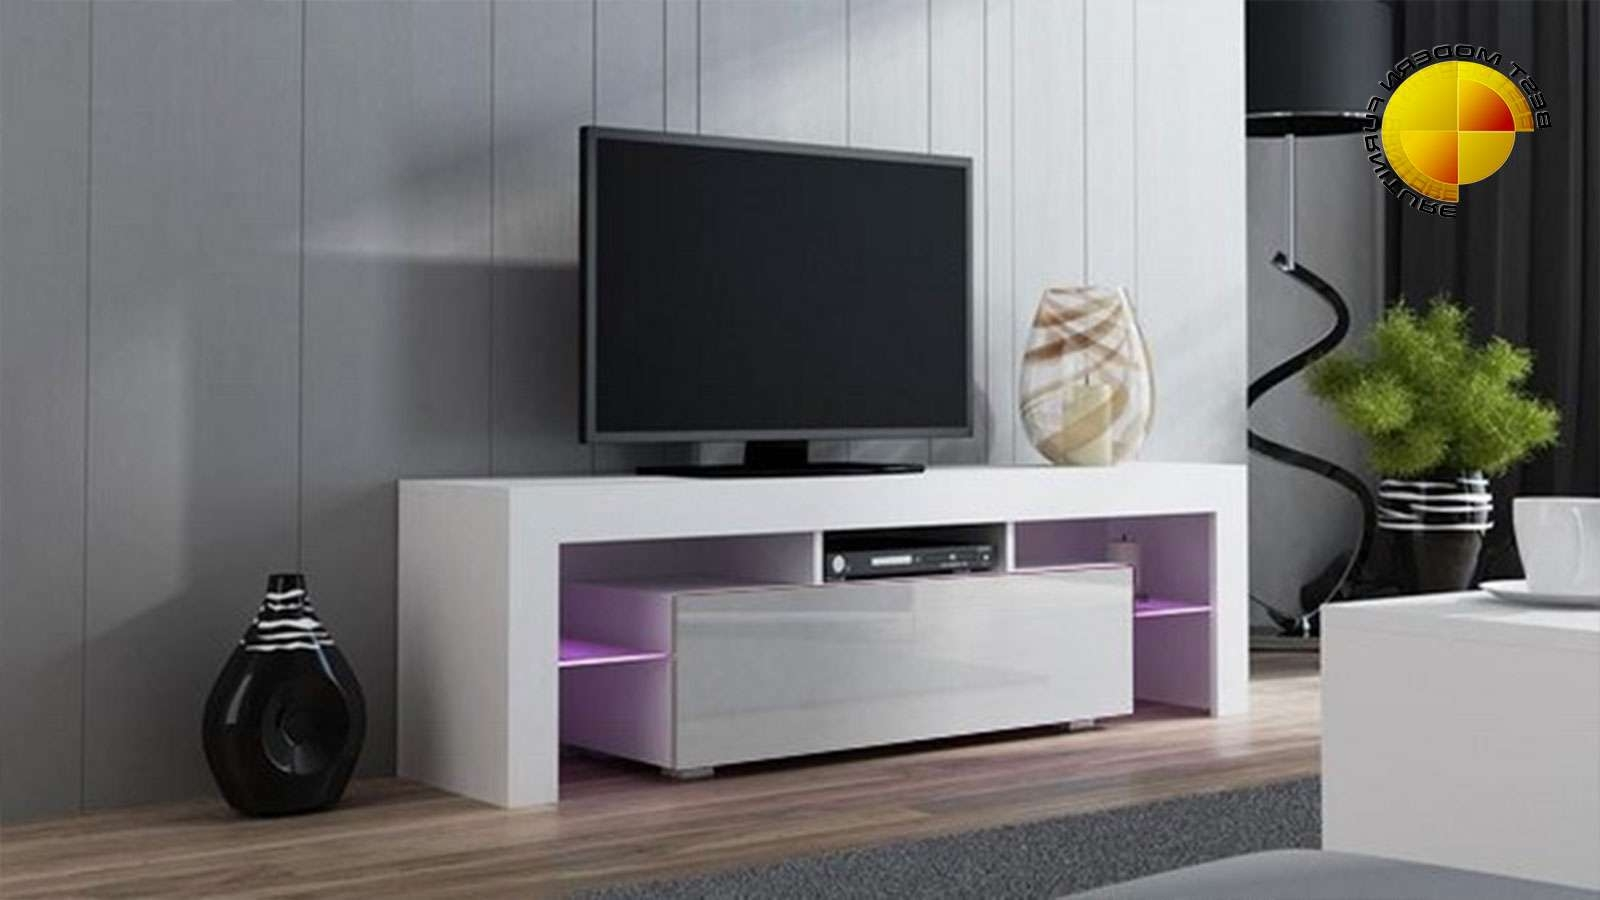 Modern Tv Stand 160cm High Gloss Cabinet Rgb Led Lights White Unit In White Modern Tv Stands (View 10 of 15)